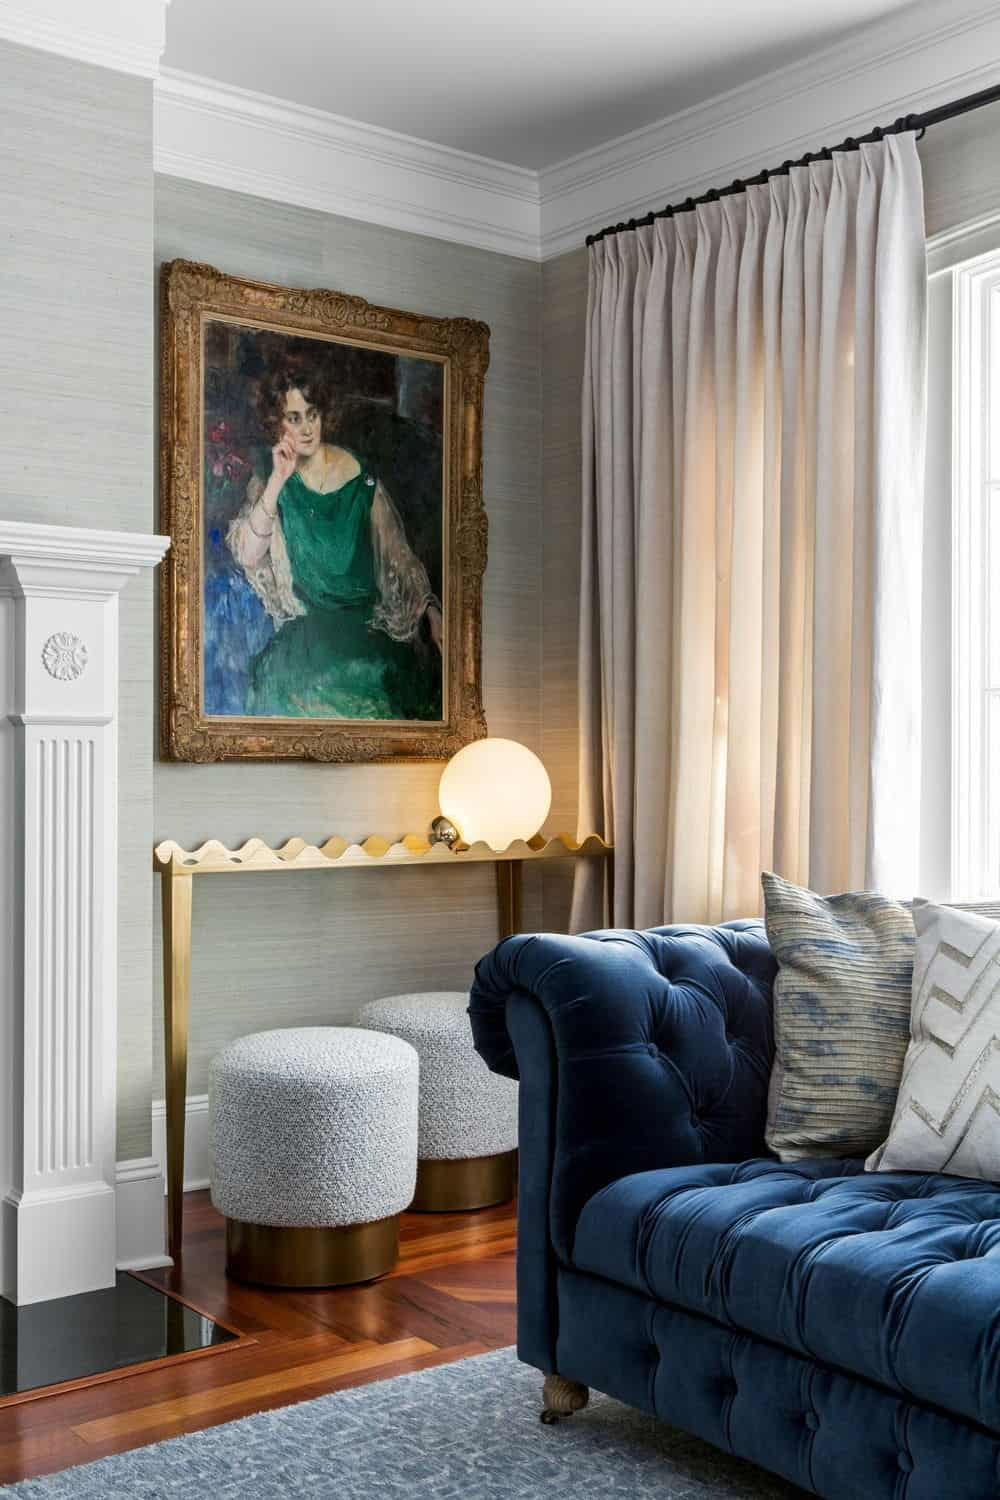 Close up look of the living room's beautiful sofa, flooring, rug and a classy portrait wall decor. Photo credit: Sean Litchfield